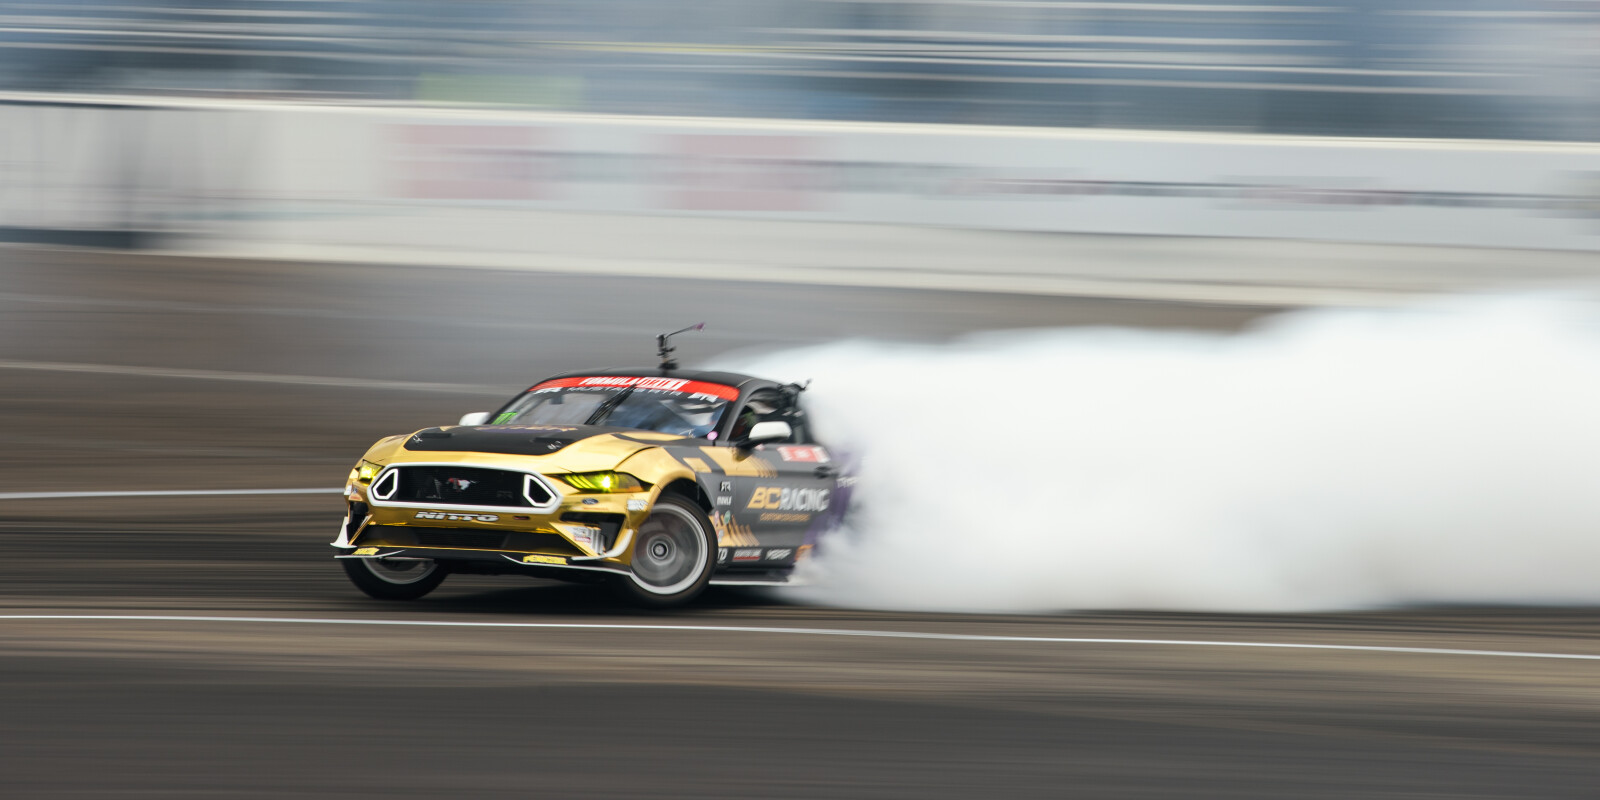 Images from the 2021 Formula Drift event in Erie, Pennsylvania